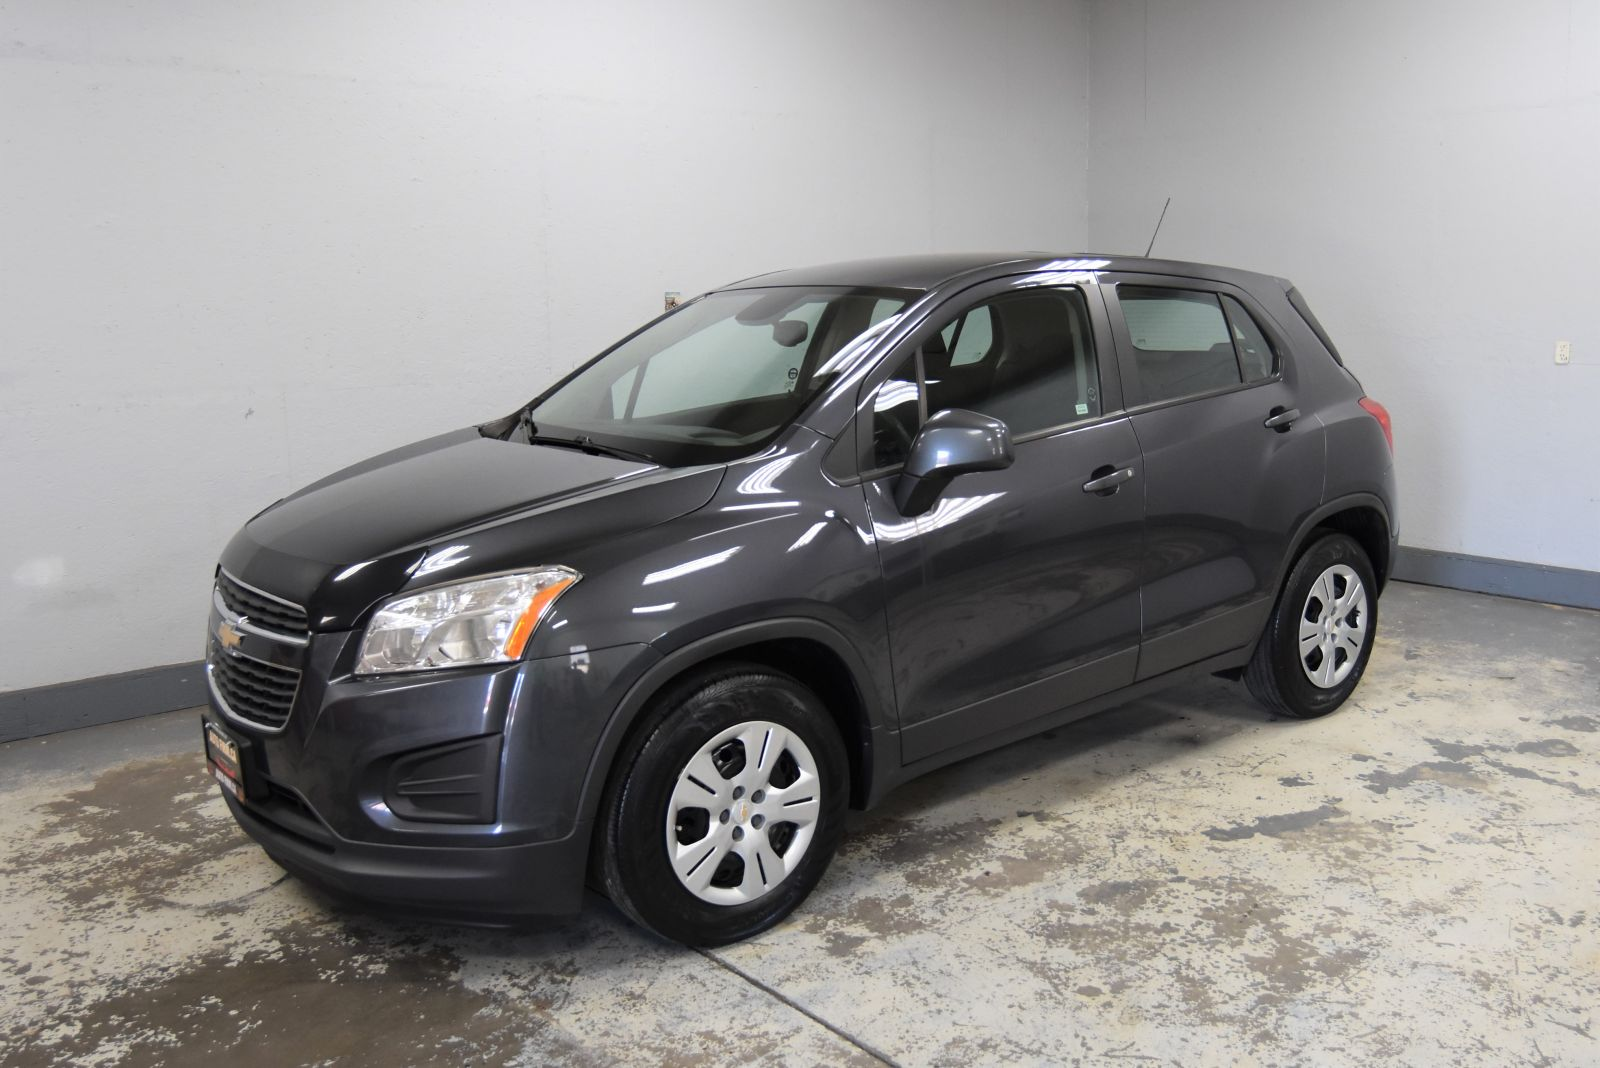 2015 Chevrolet Trax Image